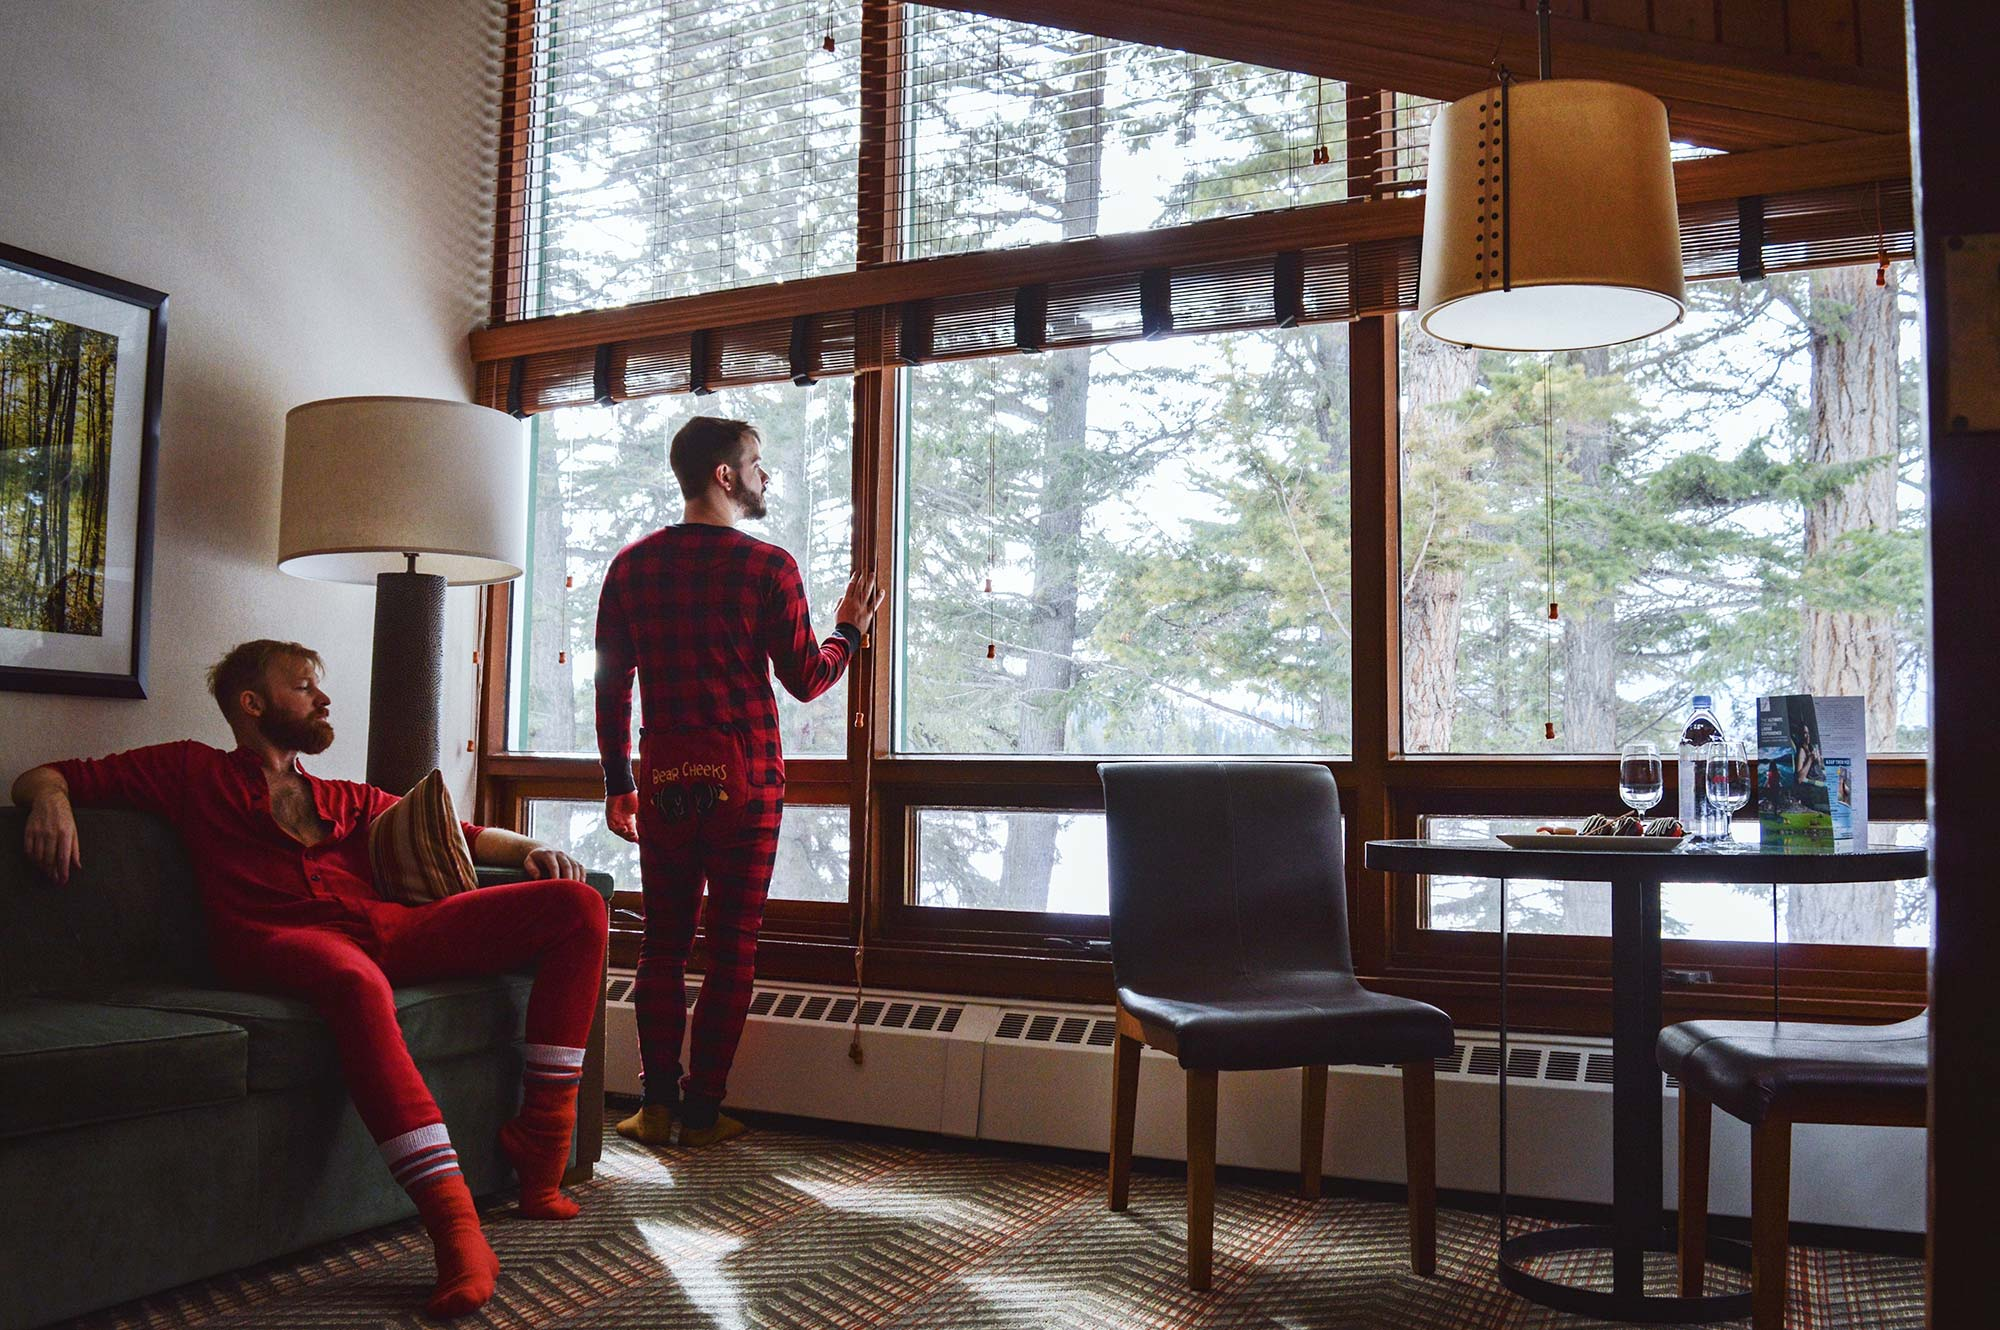 Jasper Park Lodge Alberta Canada Gay-friendly Hotel © CoupleofMen.com